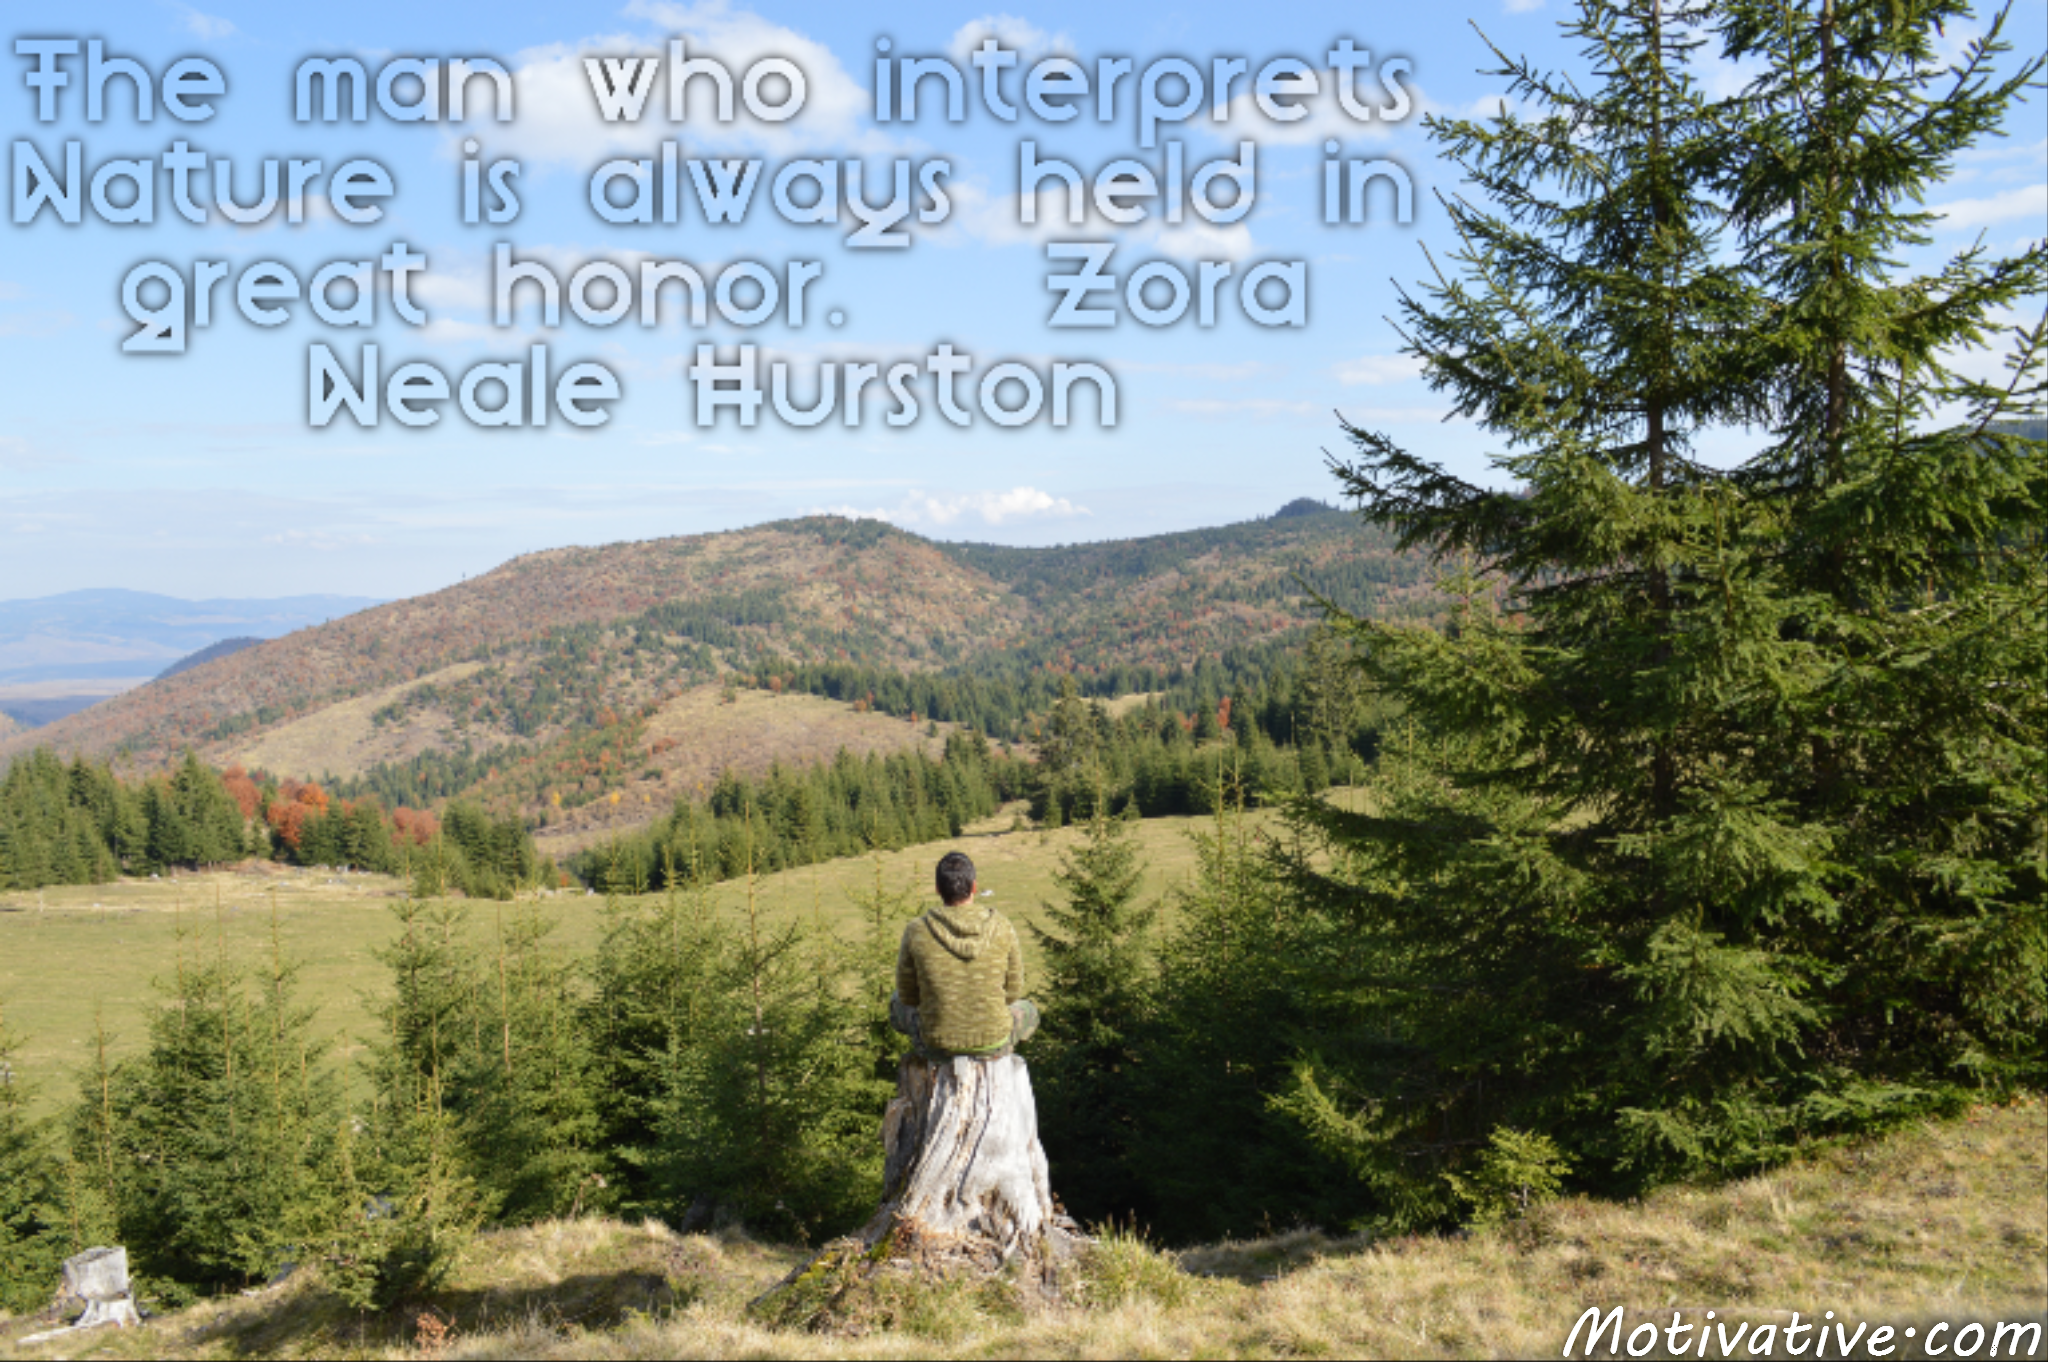 The man who interprets Nature is always held in great honor. – Zora Neale Hurston